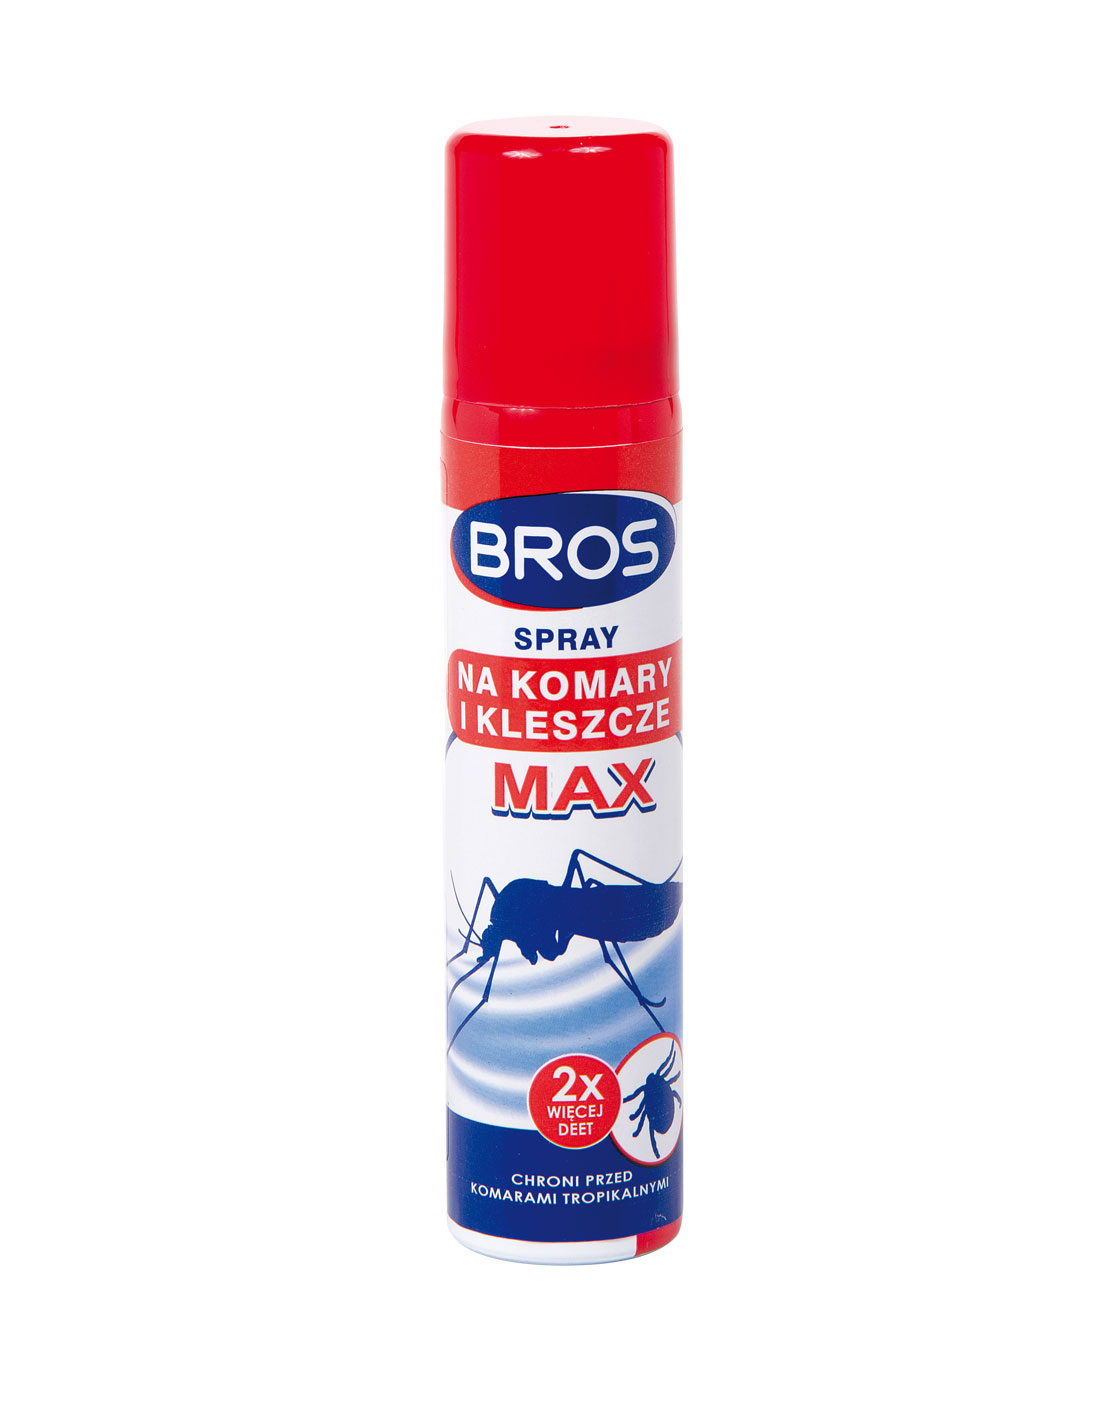 SPRAY BROS MAX NA KOMARY I KLESZCZE, 90 ML